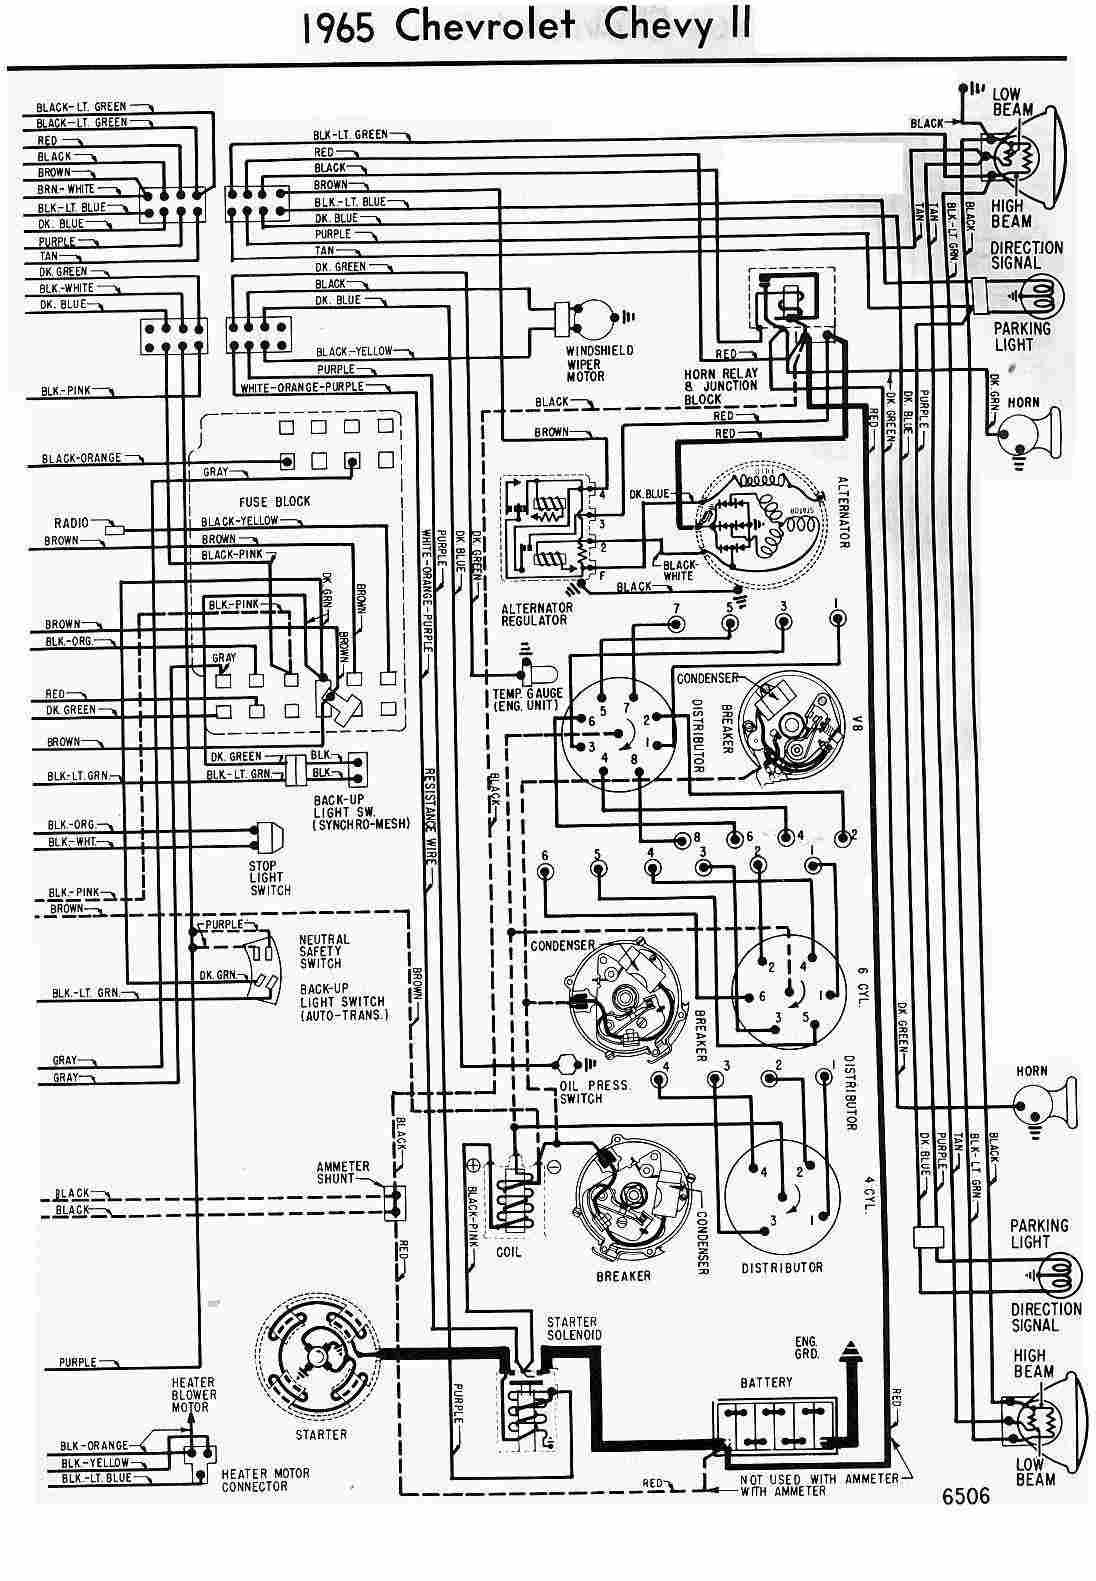 1971 Camaro Wiring Diagram Download Auto Electrical 1979 Schematic Chevrolet Car Manuals Diagrams Pdf Fault Codes Rh Automotive Net 1996